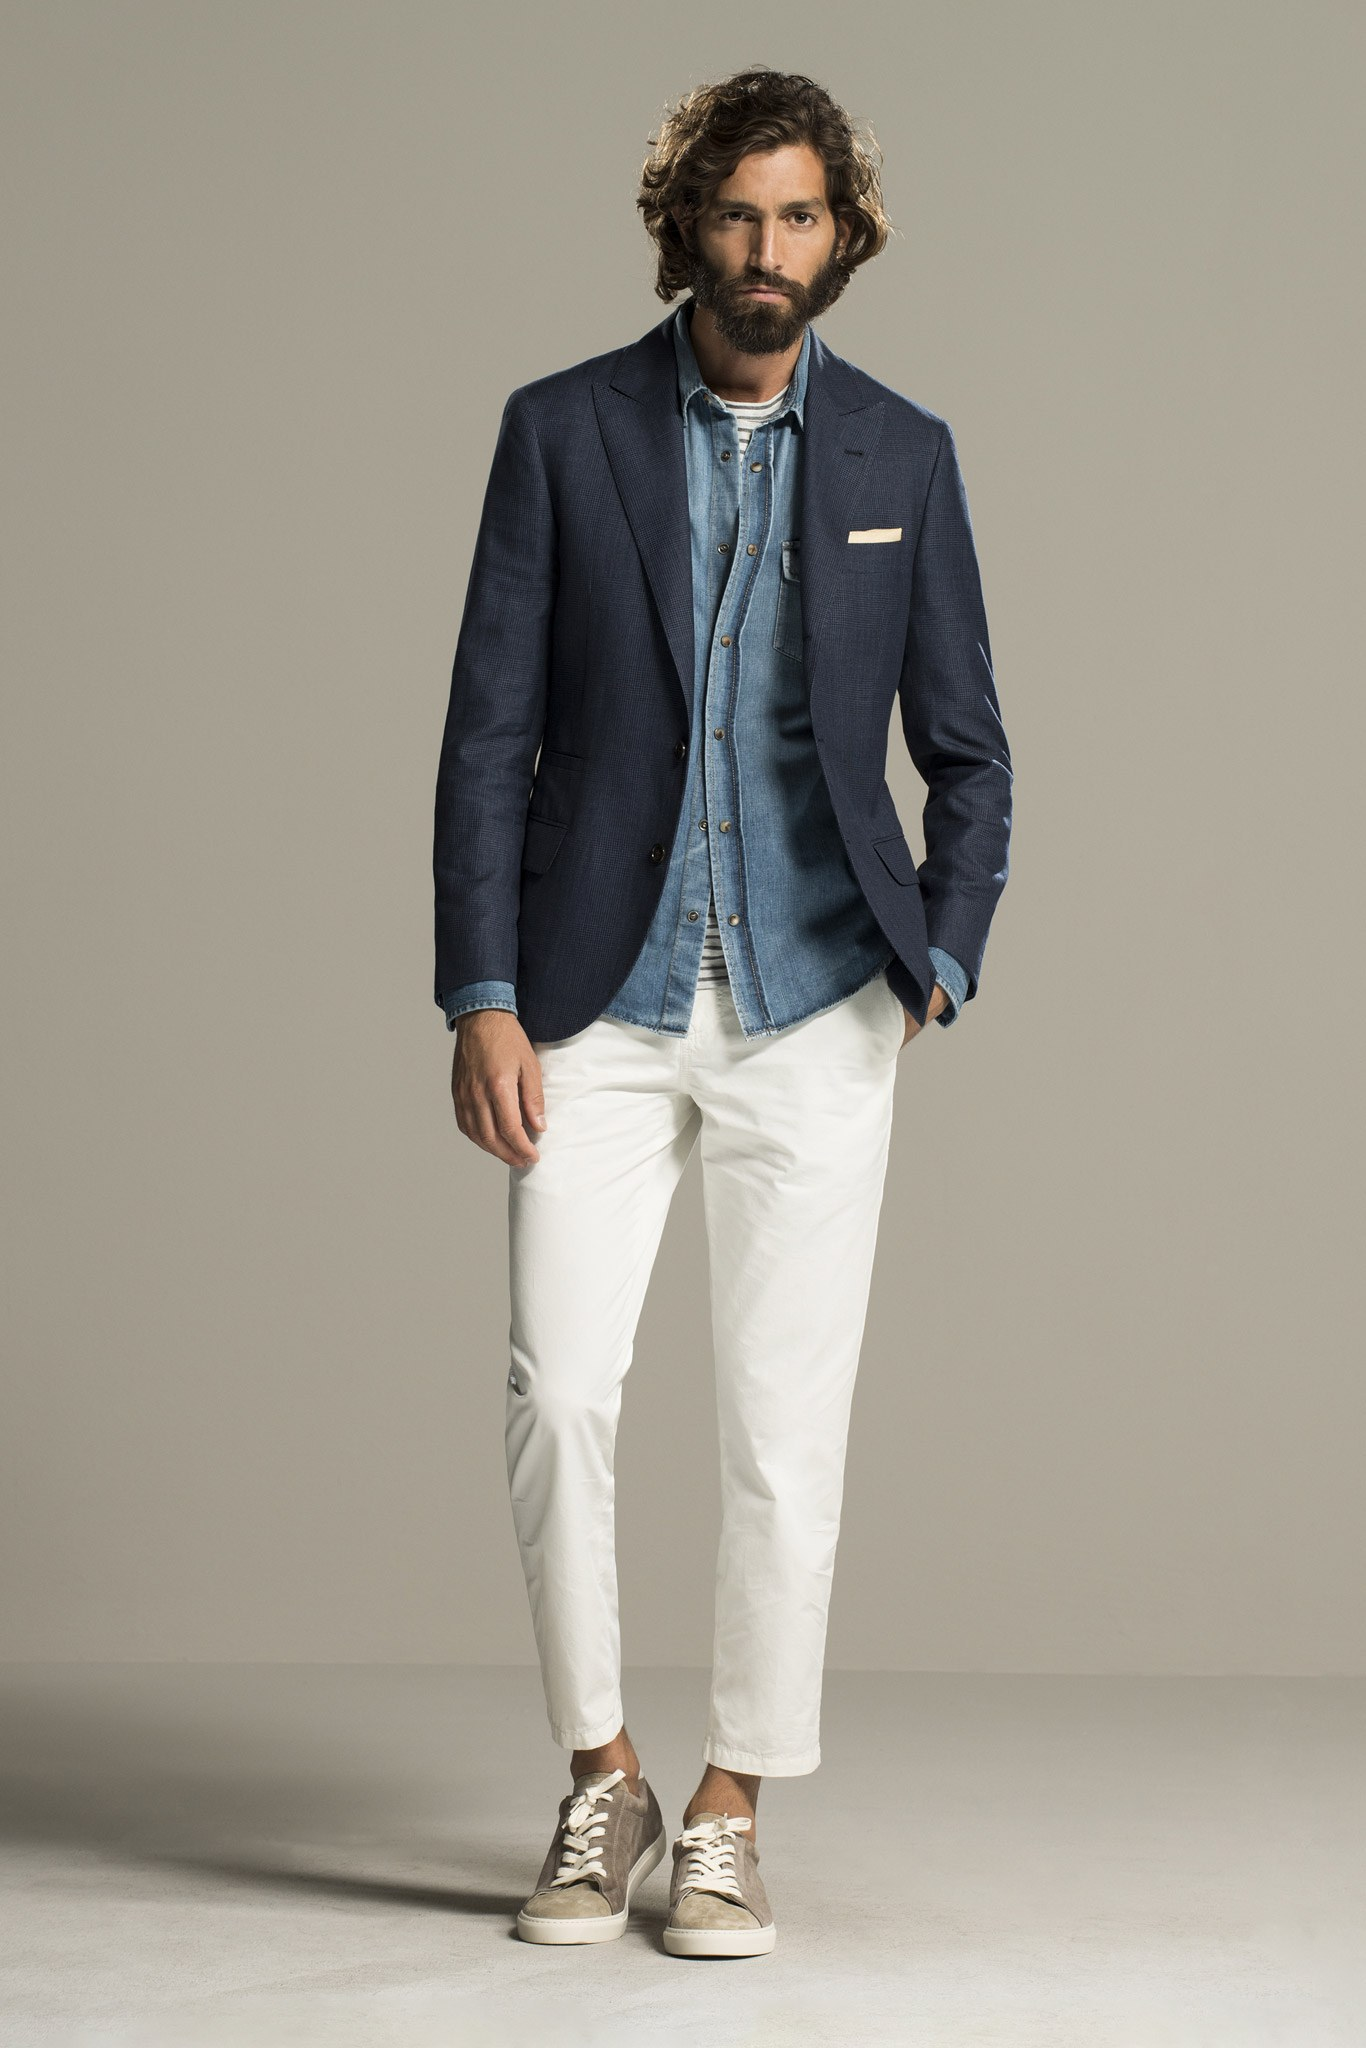 Spring Menswear Style Inspiration - Spring 2016 Menswear Brunello Cucinelli Look 26 | Vogue